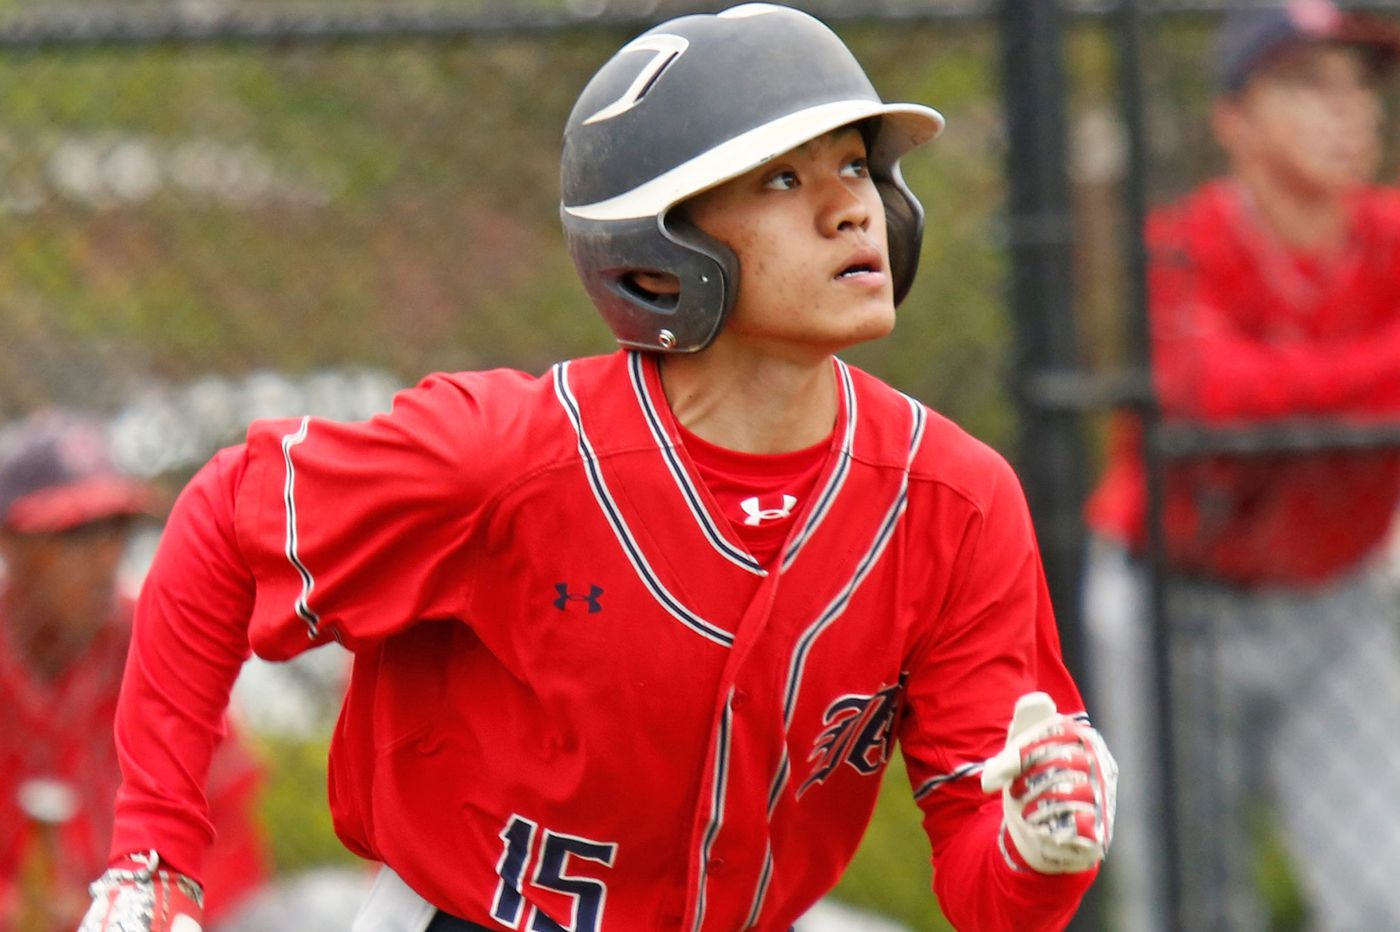 Tuesday's South Jersey roundup: Adam Robinson goes yard twice, drives in six runs for Moorestown baseball